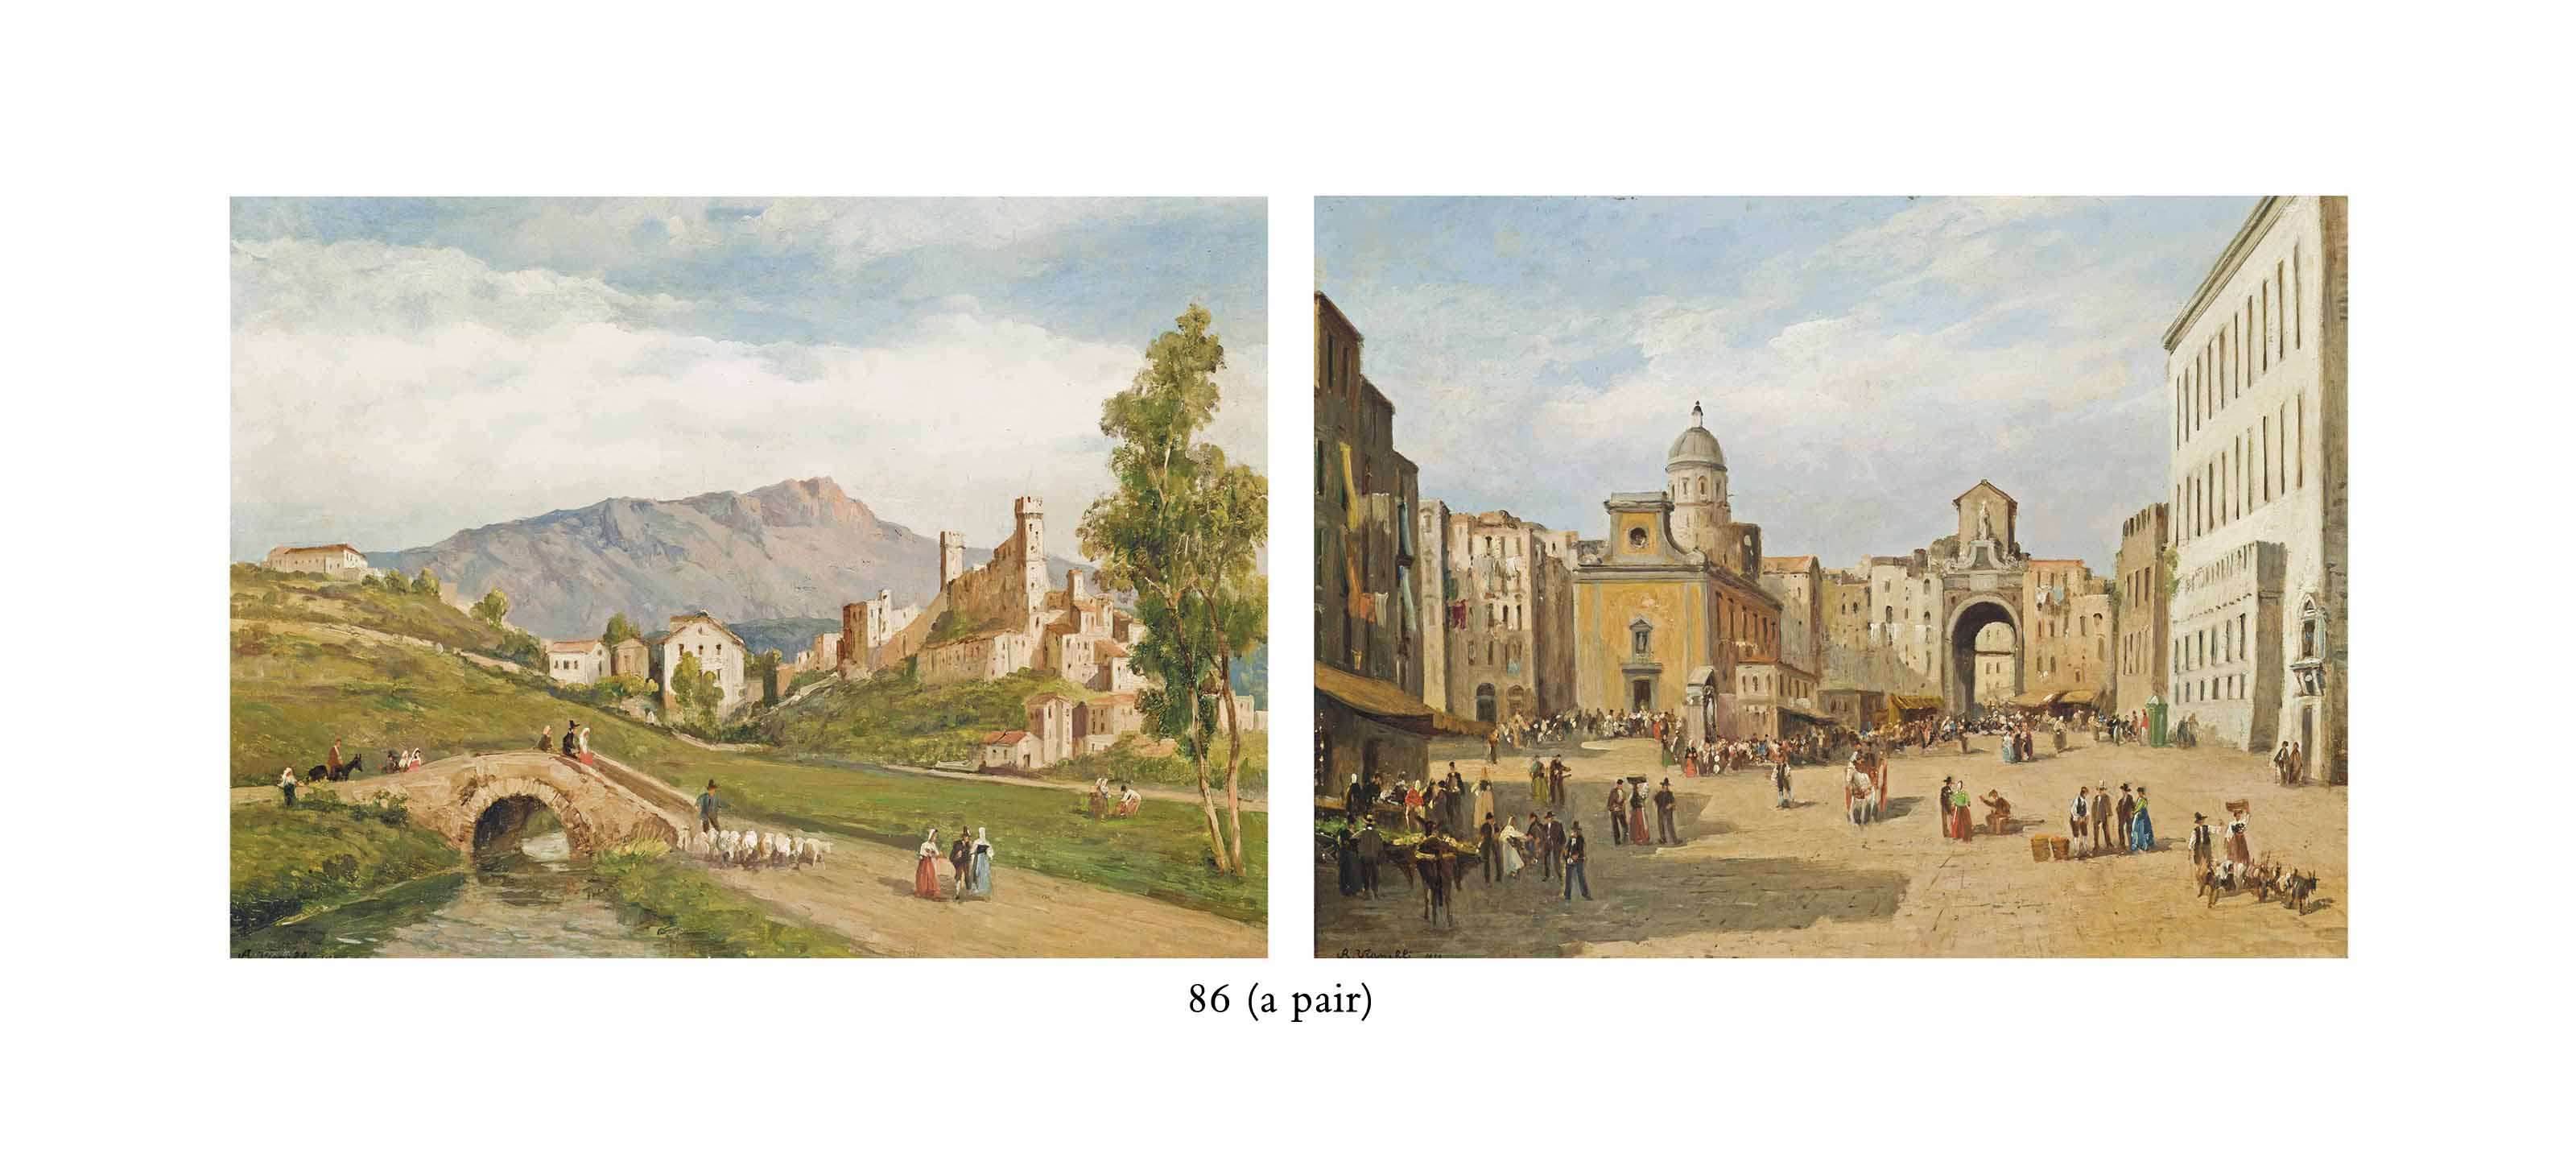 A busy Neapolitan Square; and Figures crossing a bridge before a town